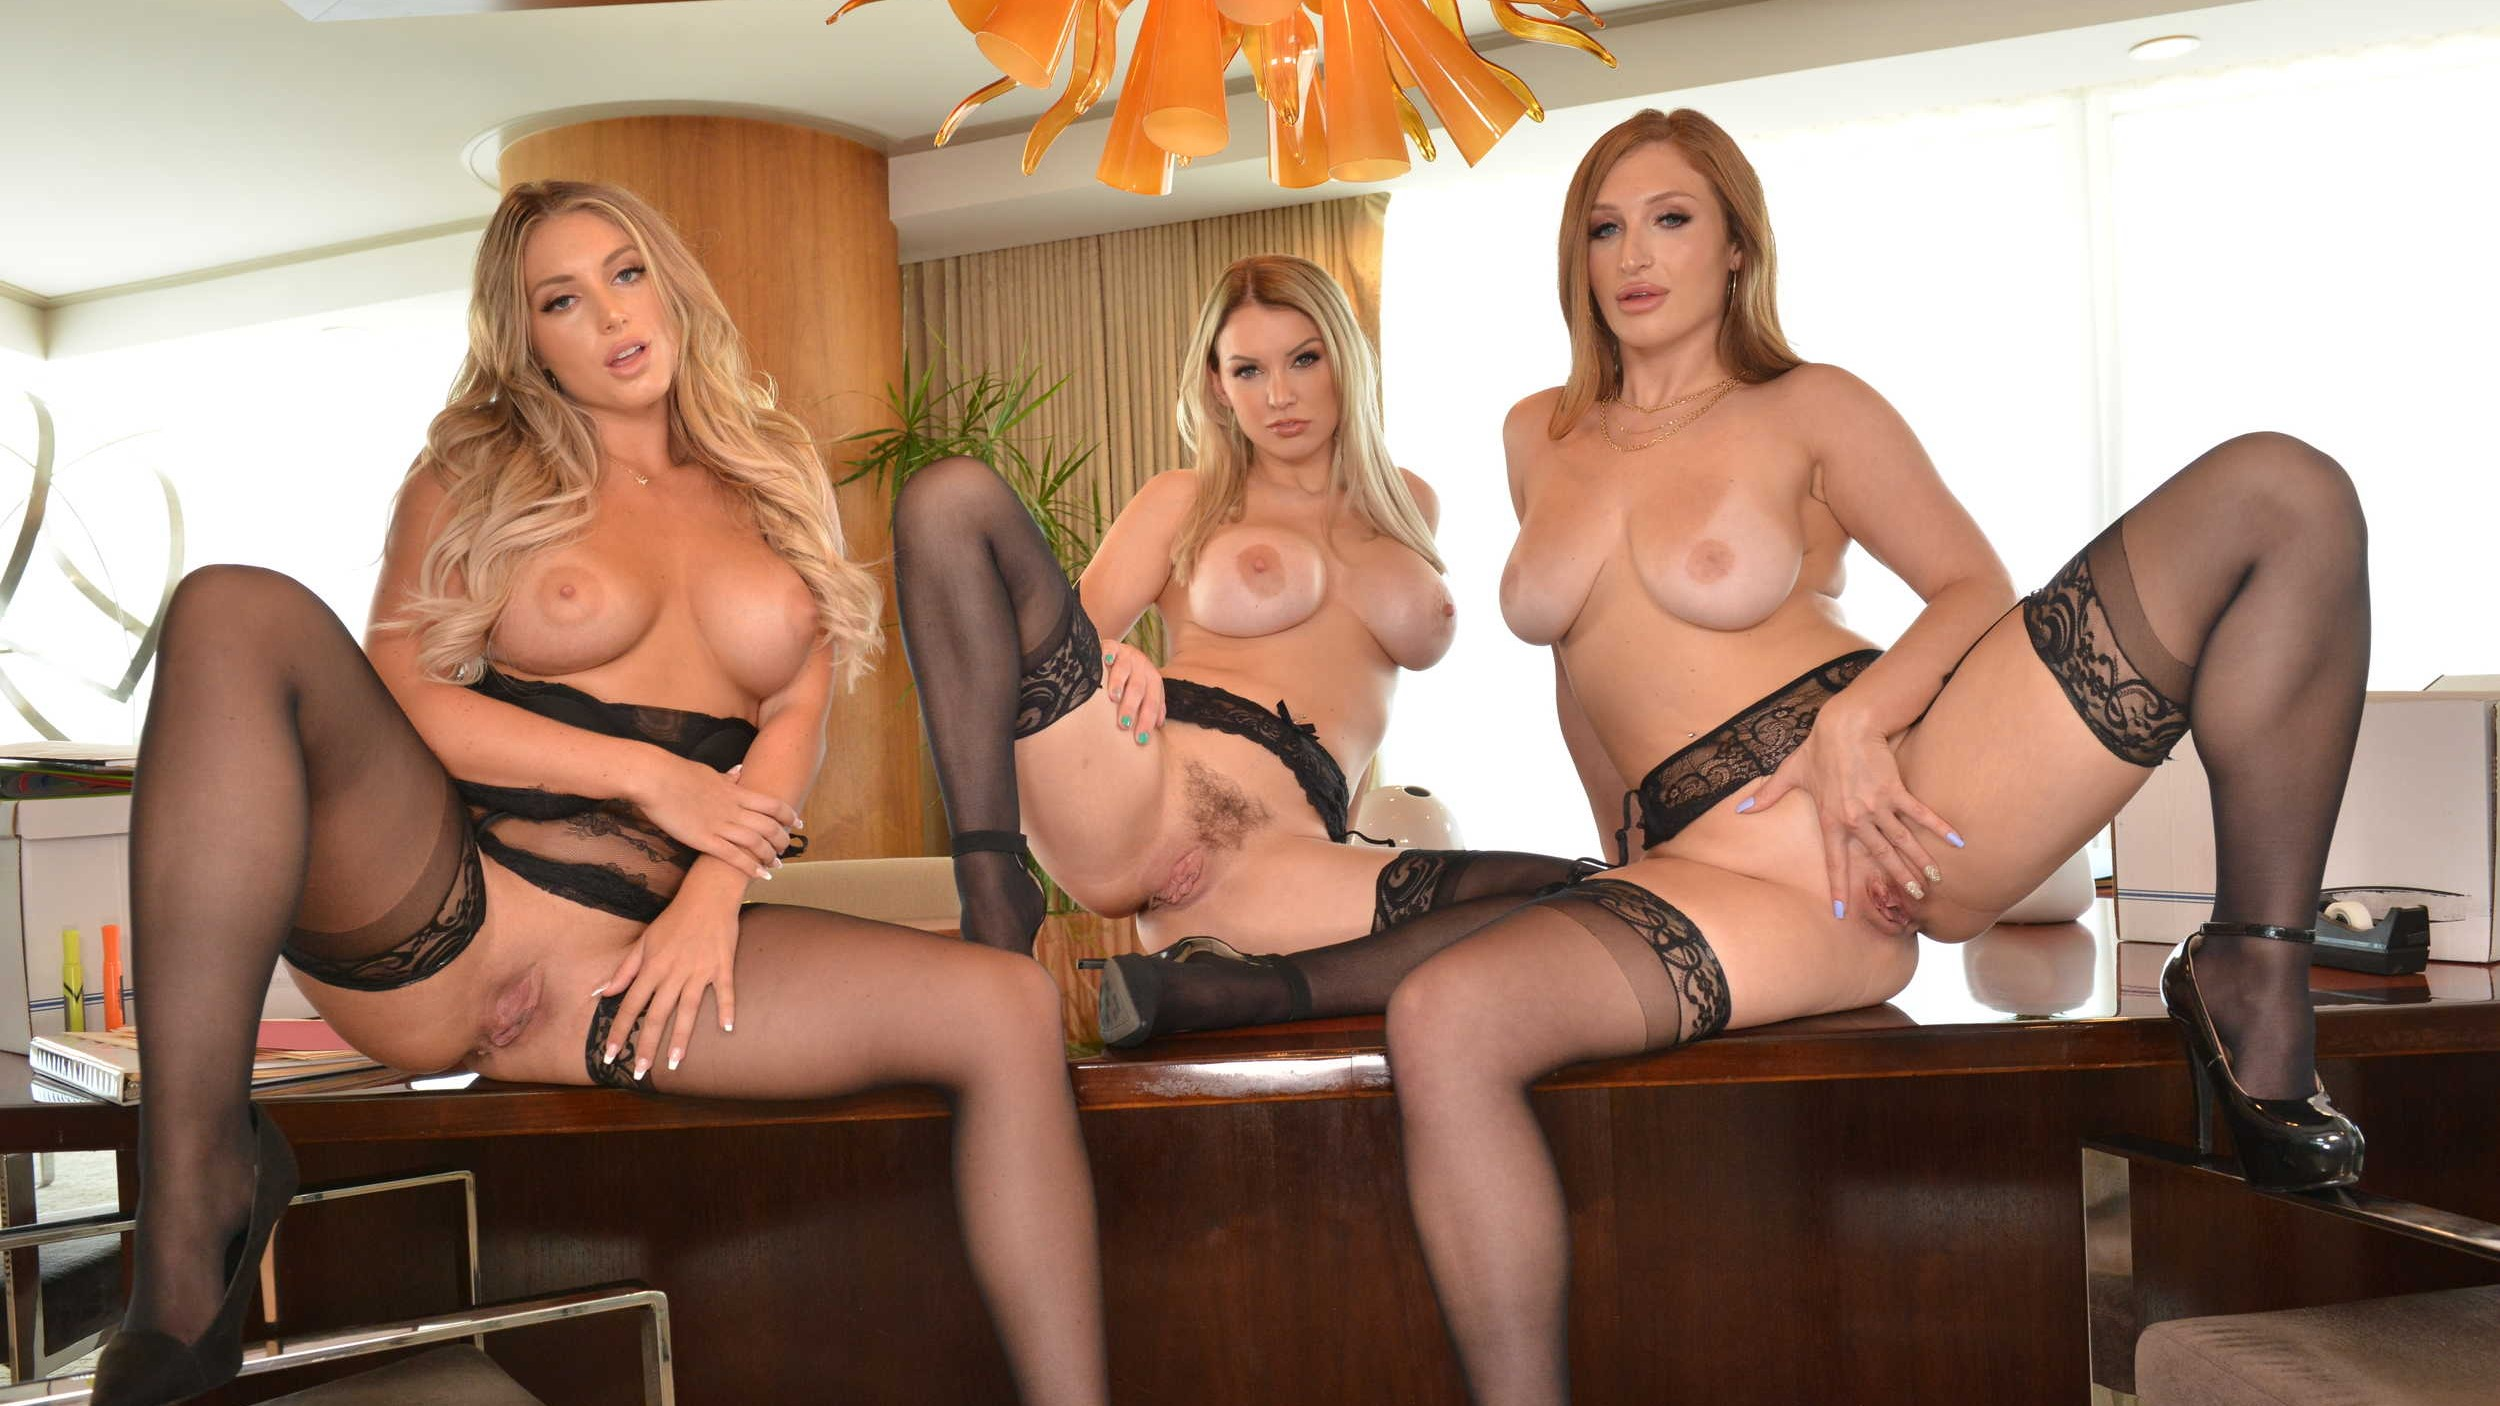 Slutty coworkers, Kayley Gunner, Kenzie Taylor, & Skylar Snow, will do anything to get out of work early and enjoy the Labor Day weekend